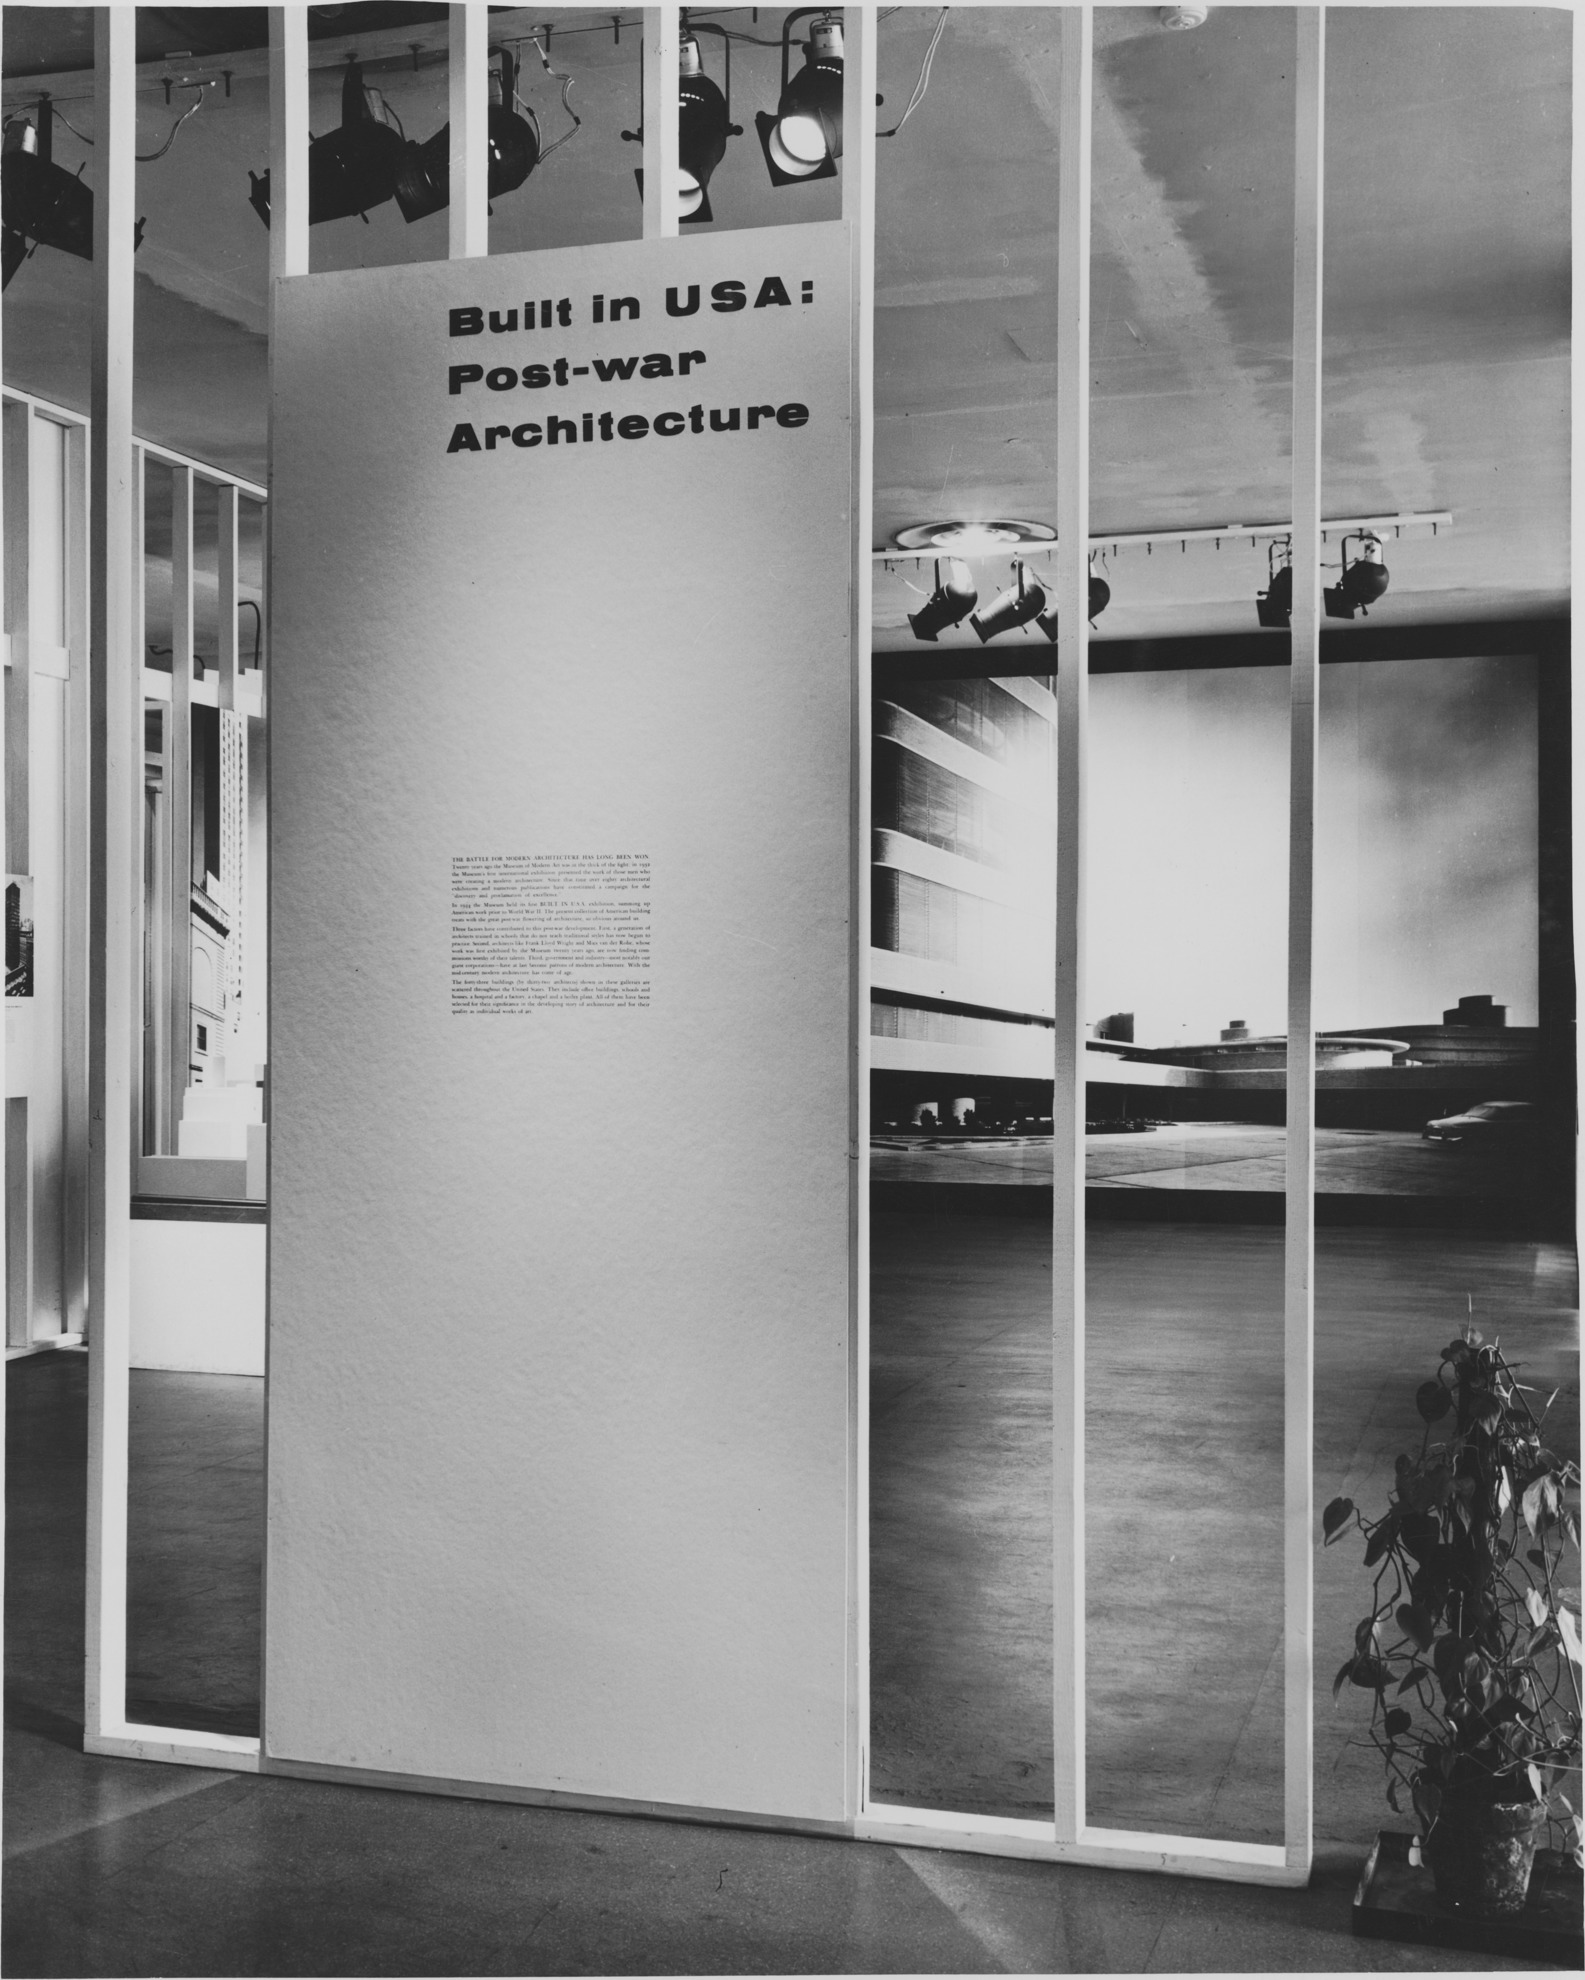 Built In USA PostWar Architecture MoMA - Black museums in usa